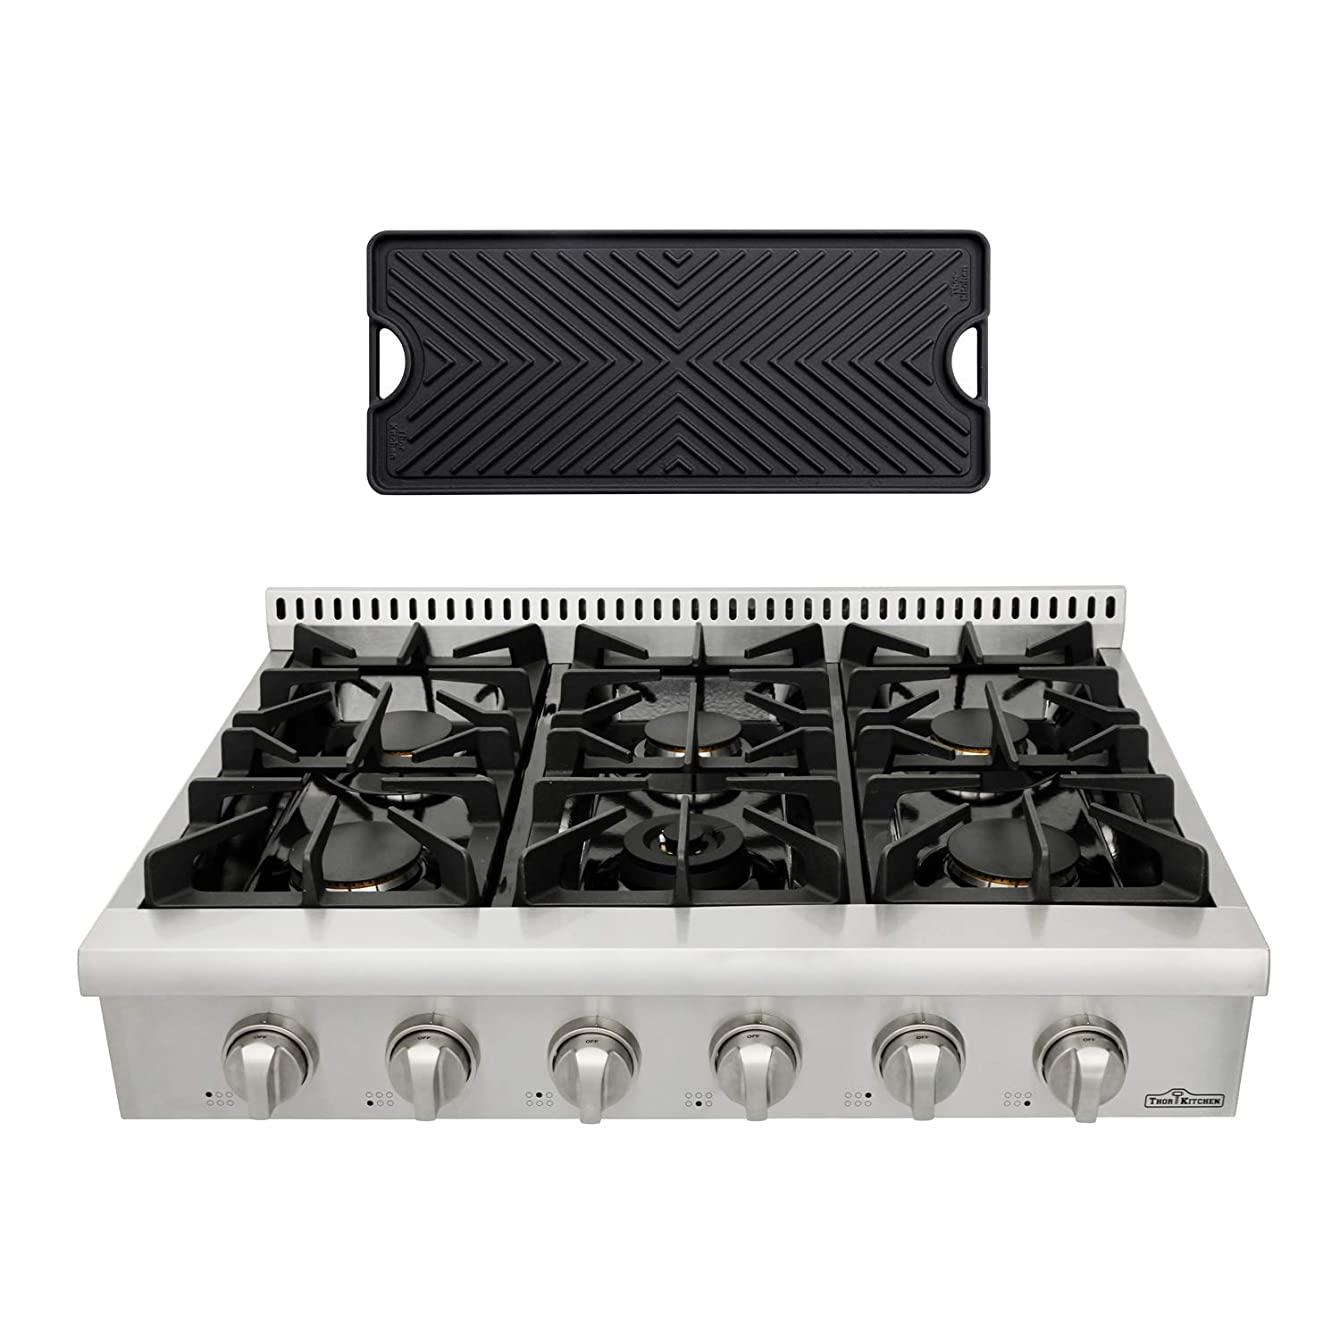 Thor Kitchen HRT3618U 36'' Gas Cooktop with 6 Sealed Burners in Stainless Steel, Flat Cast-iron Grates, Cast-Iron Reversible Griddle